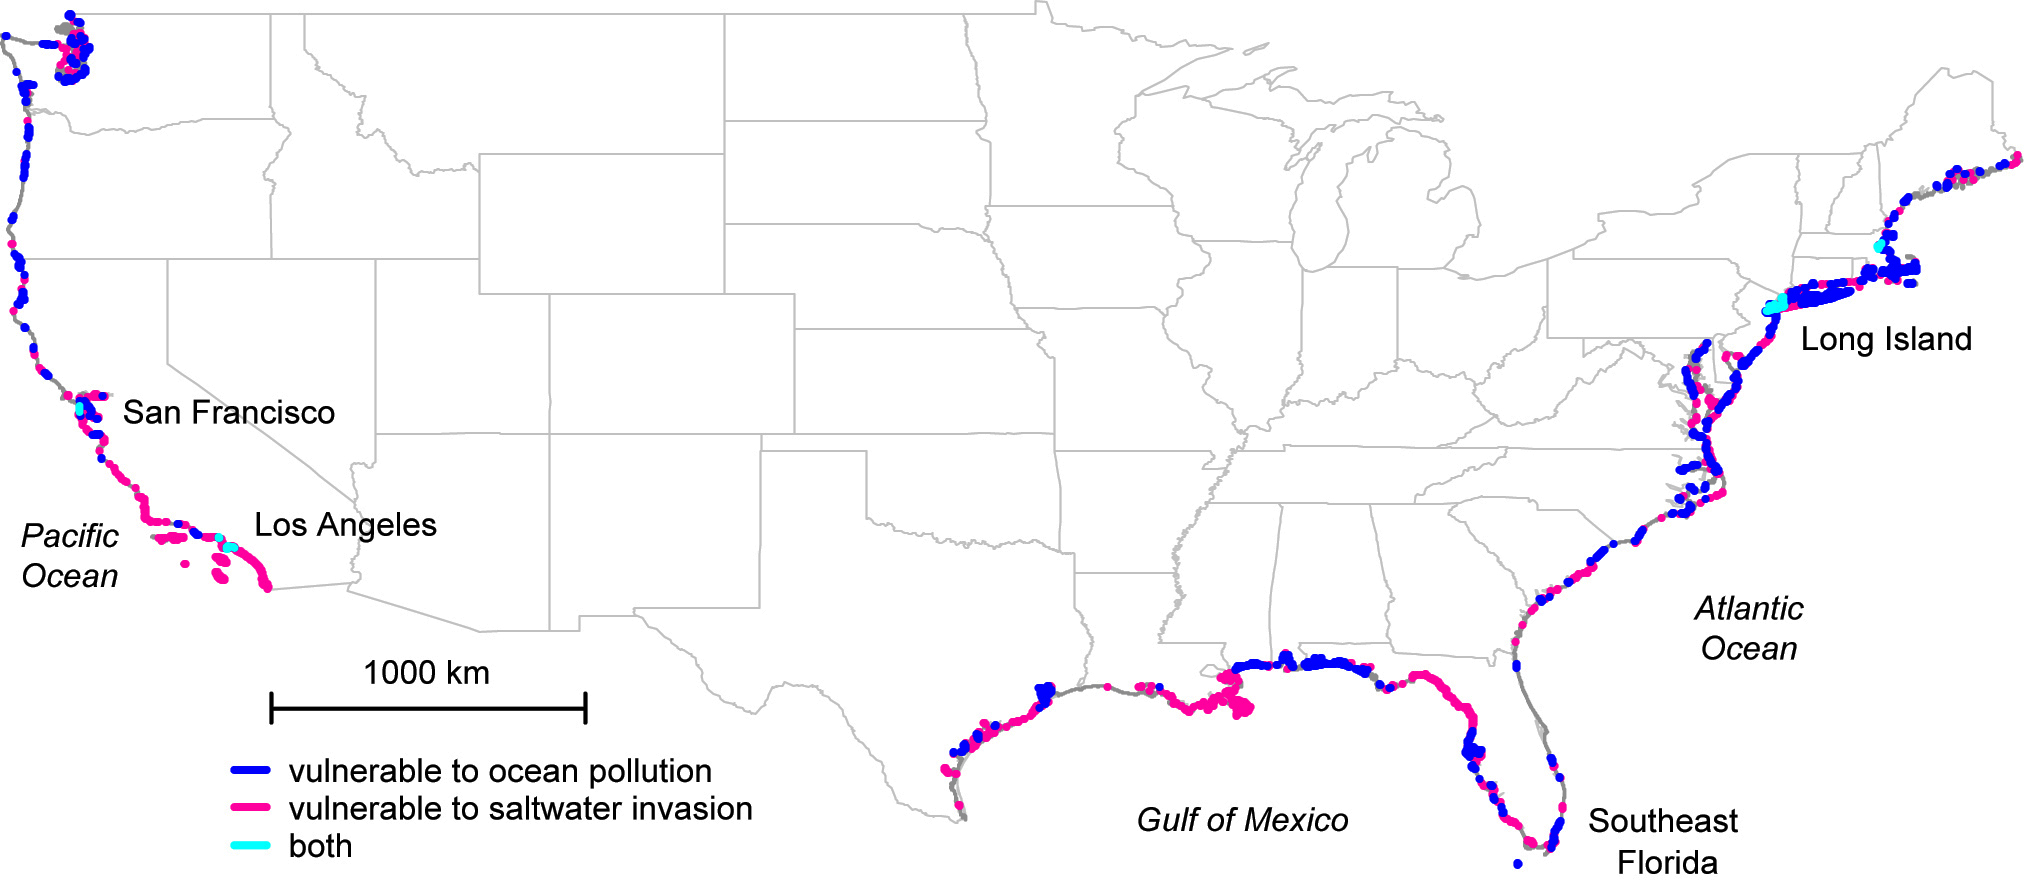 Study Maps Hidden Water Pollution In US Coastal Areas NASA - Los angeles us map